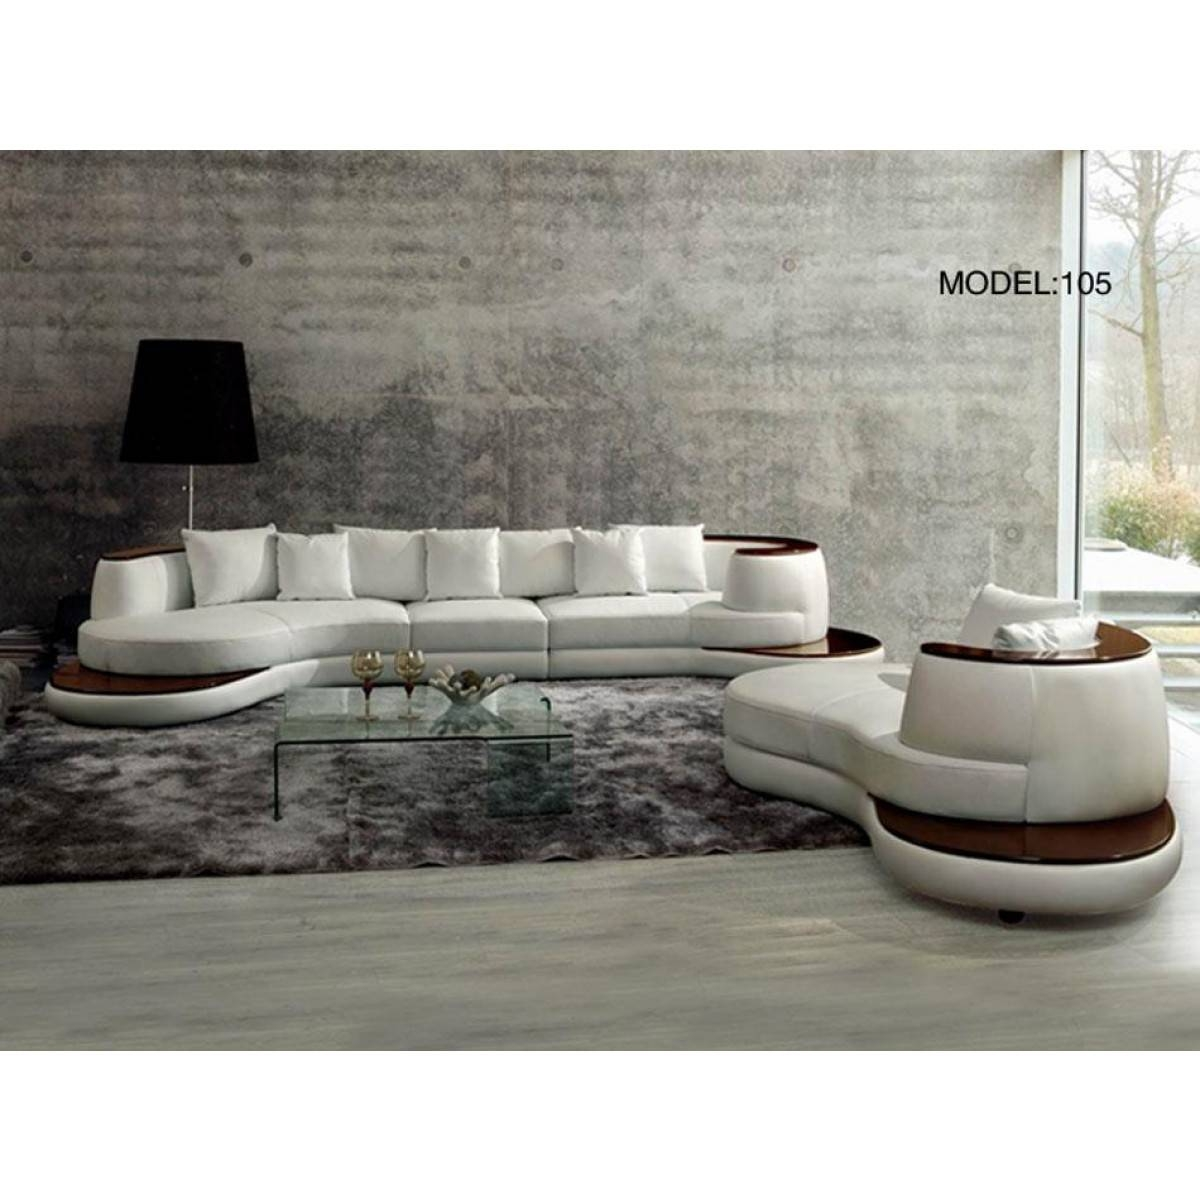 Contemporary & Luxury Furniture; Living Room, Bedroom,la Furniture throughout Rounded Sofa (Image 2 of 25)